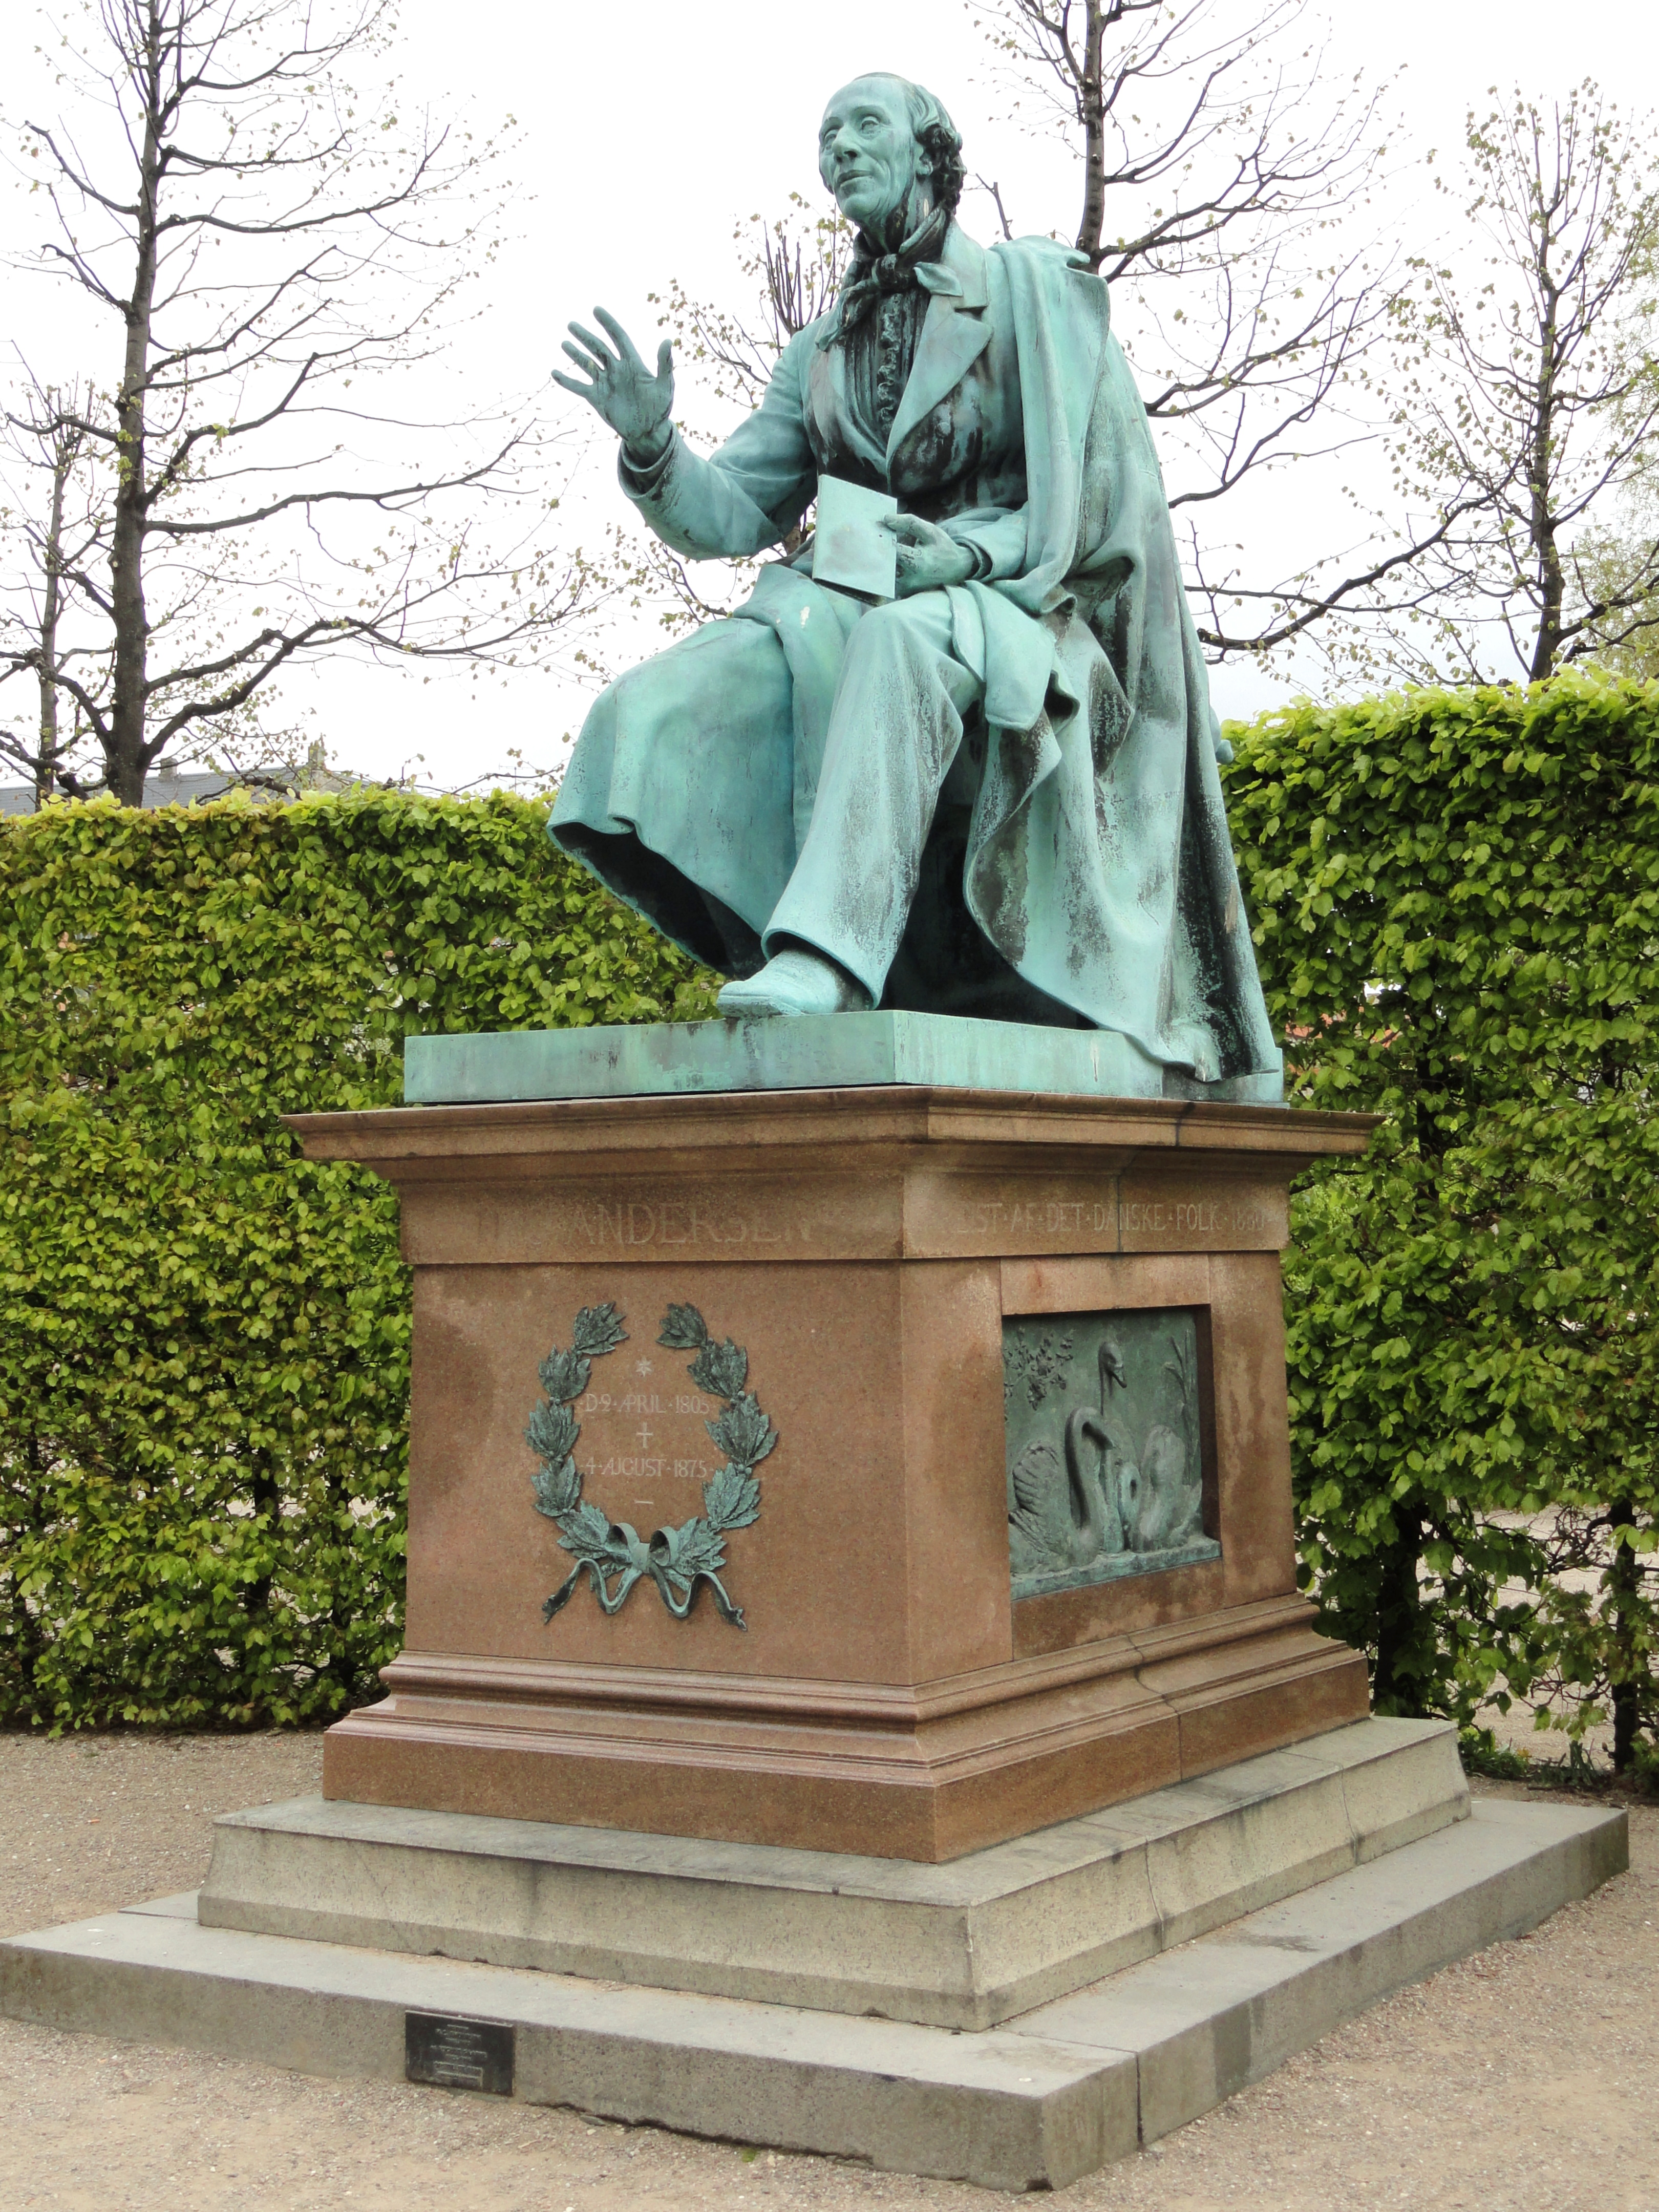 Hans Christian Andersen Statue In Kongens Have Copenhagen Dsc also Hans Christian Andersen Tallow Candle in addition Anime Male Hair Drawing in addition Hans Christian And A also A Fea A C De D C A F D Jm Barrie Peter Pan. on the tallow candle fairy tale